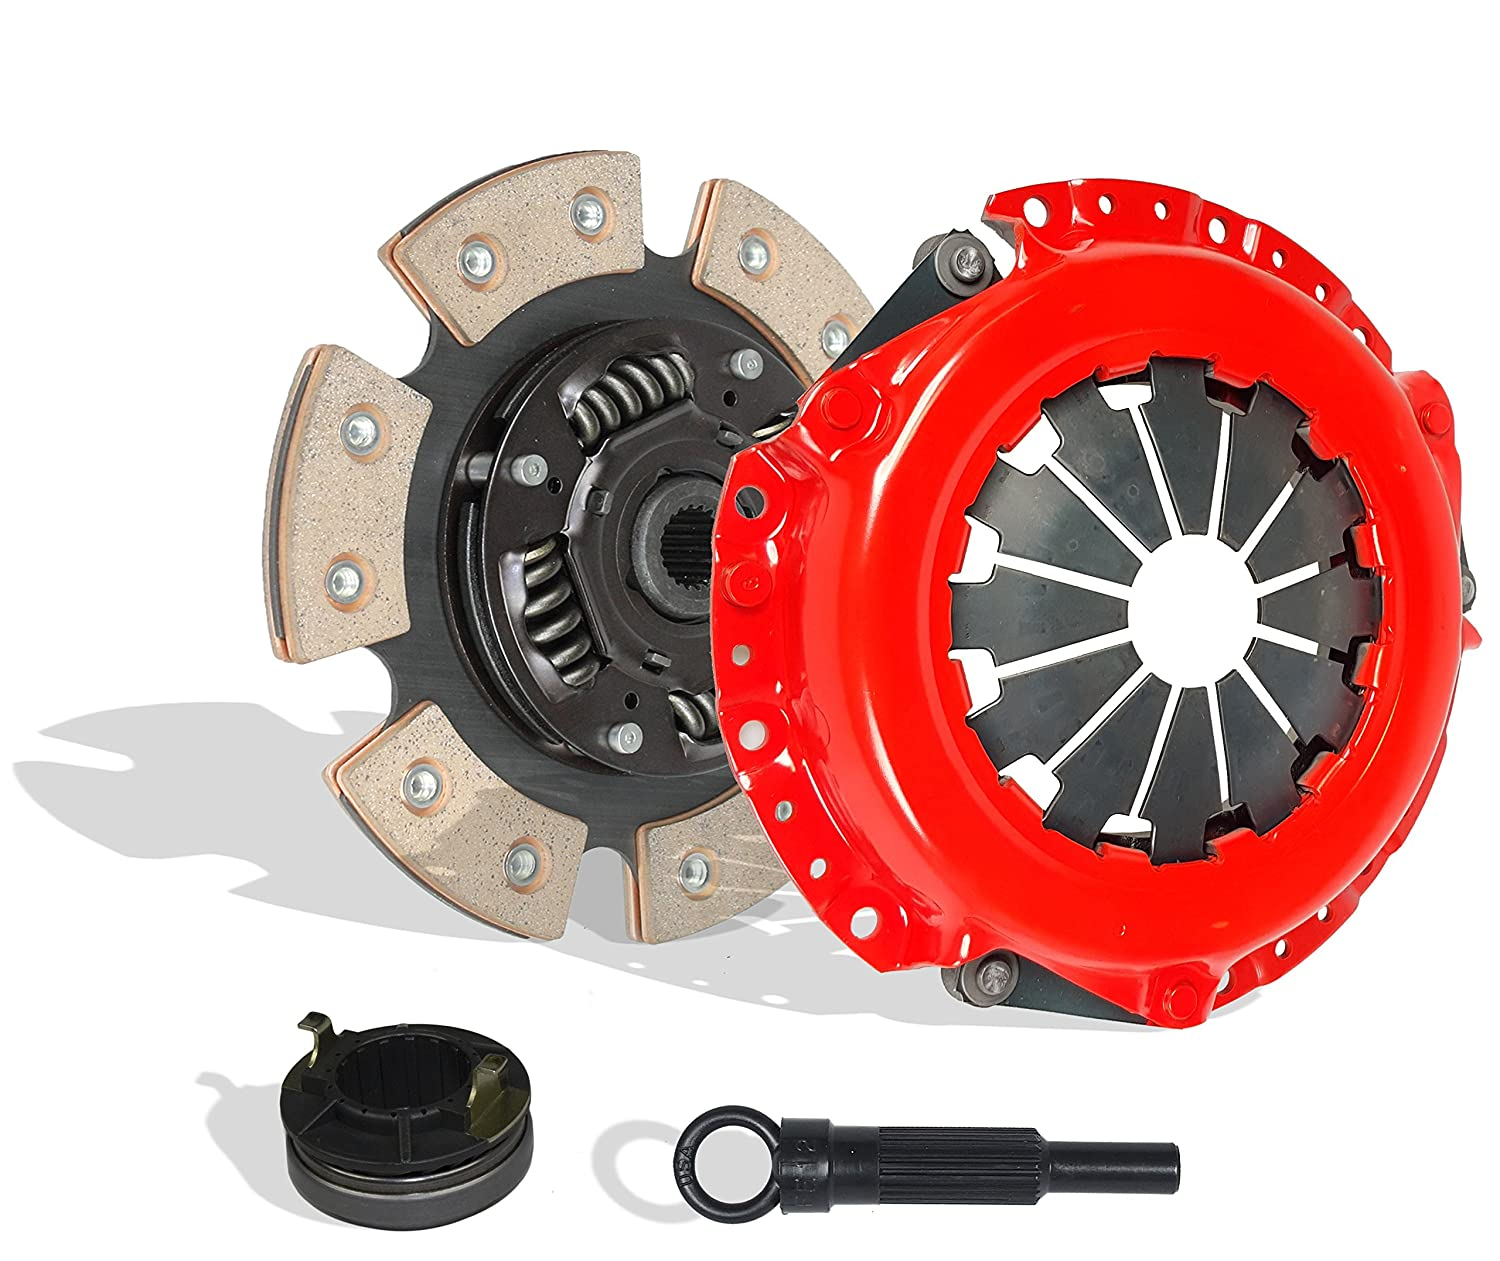 Clutch Kit Set Works With Hyundai Accent Gl Gls Gt SE Gs Base Sedan Hatchback 2001-2008 1.6L 1600CC l4 GAS DOHC Naturally Aspirated (6-Puck Disc Stage 2)